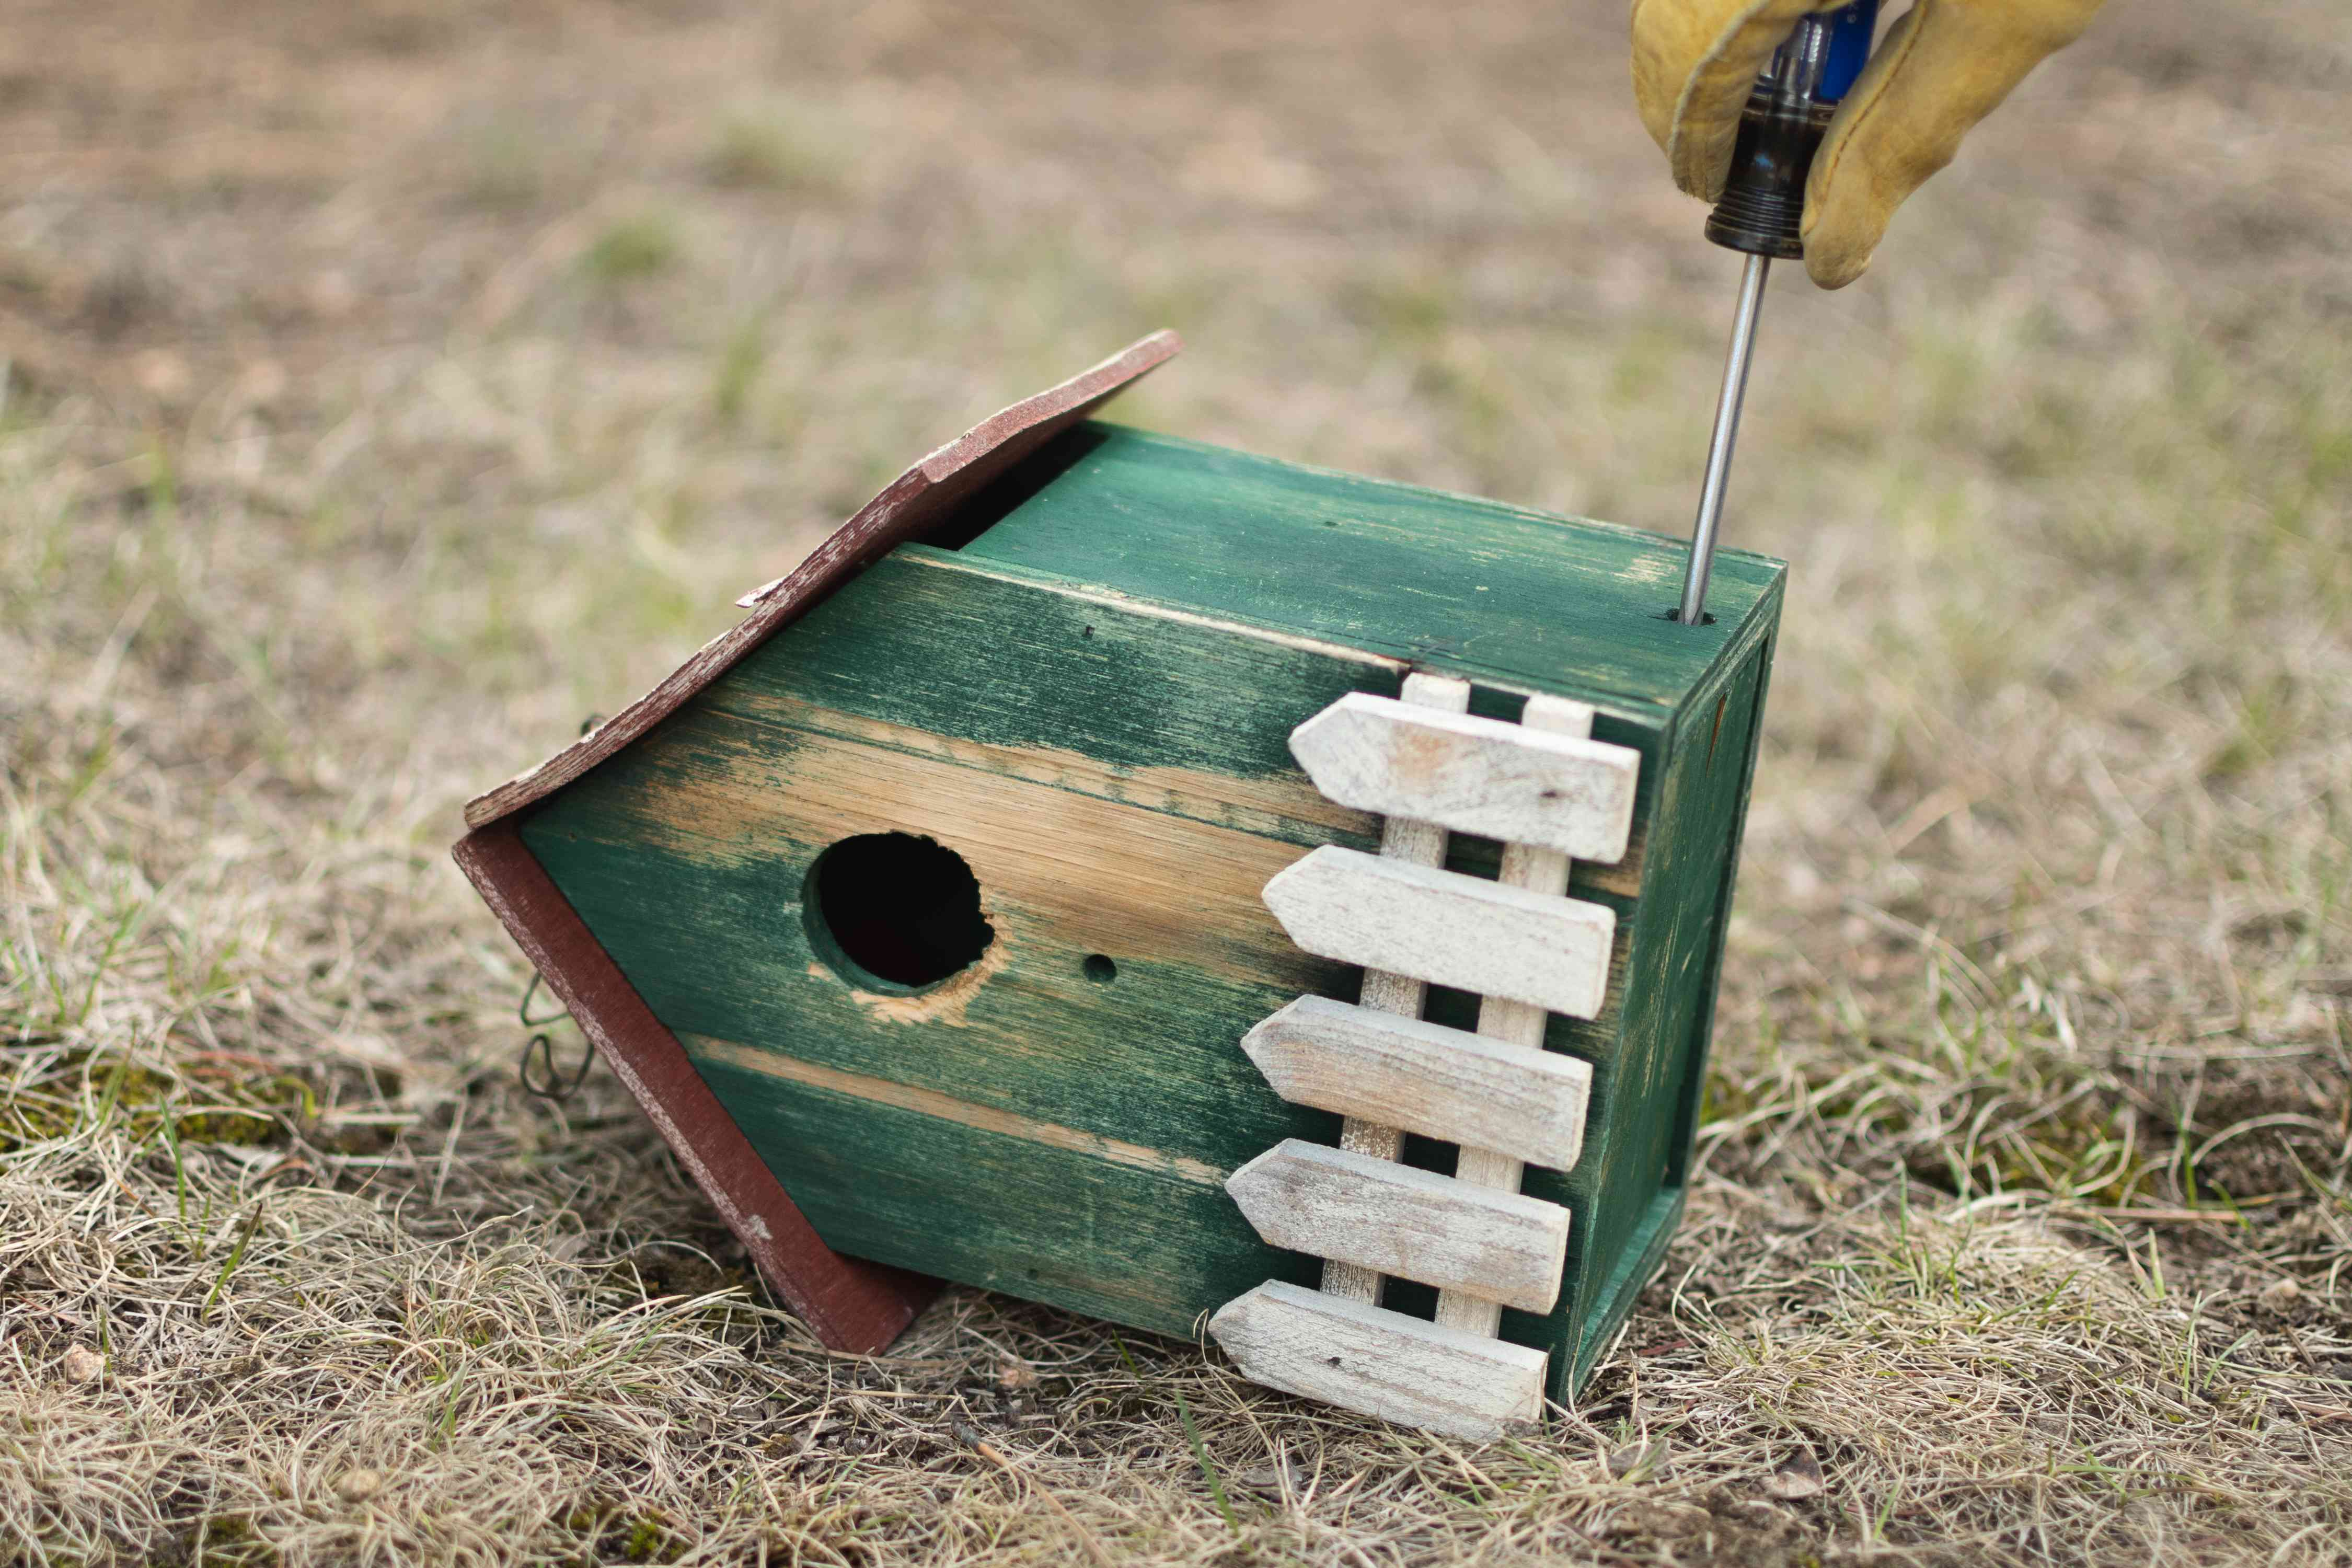 Wooden green birdhouse tipped on side to secure bottom with screwdriver